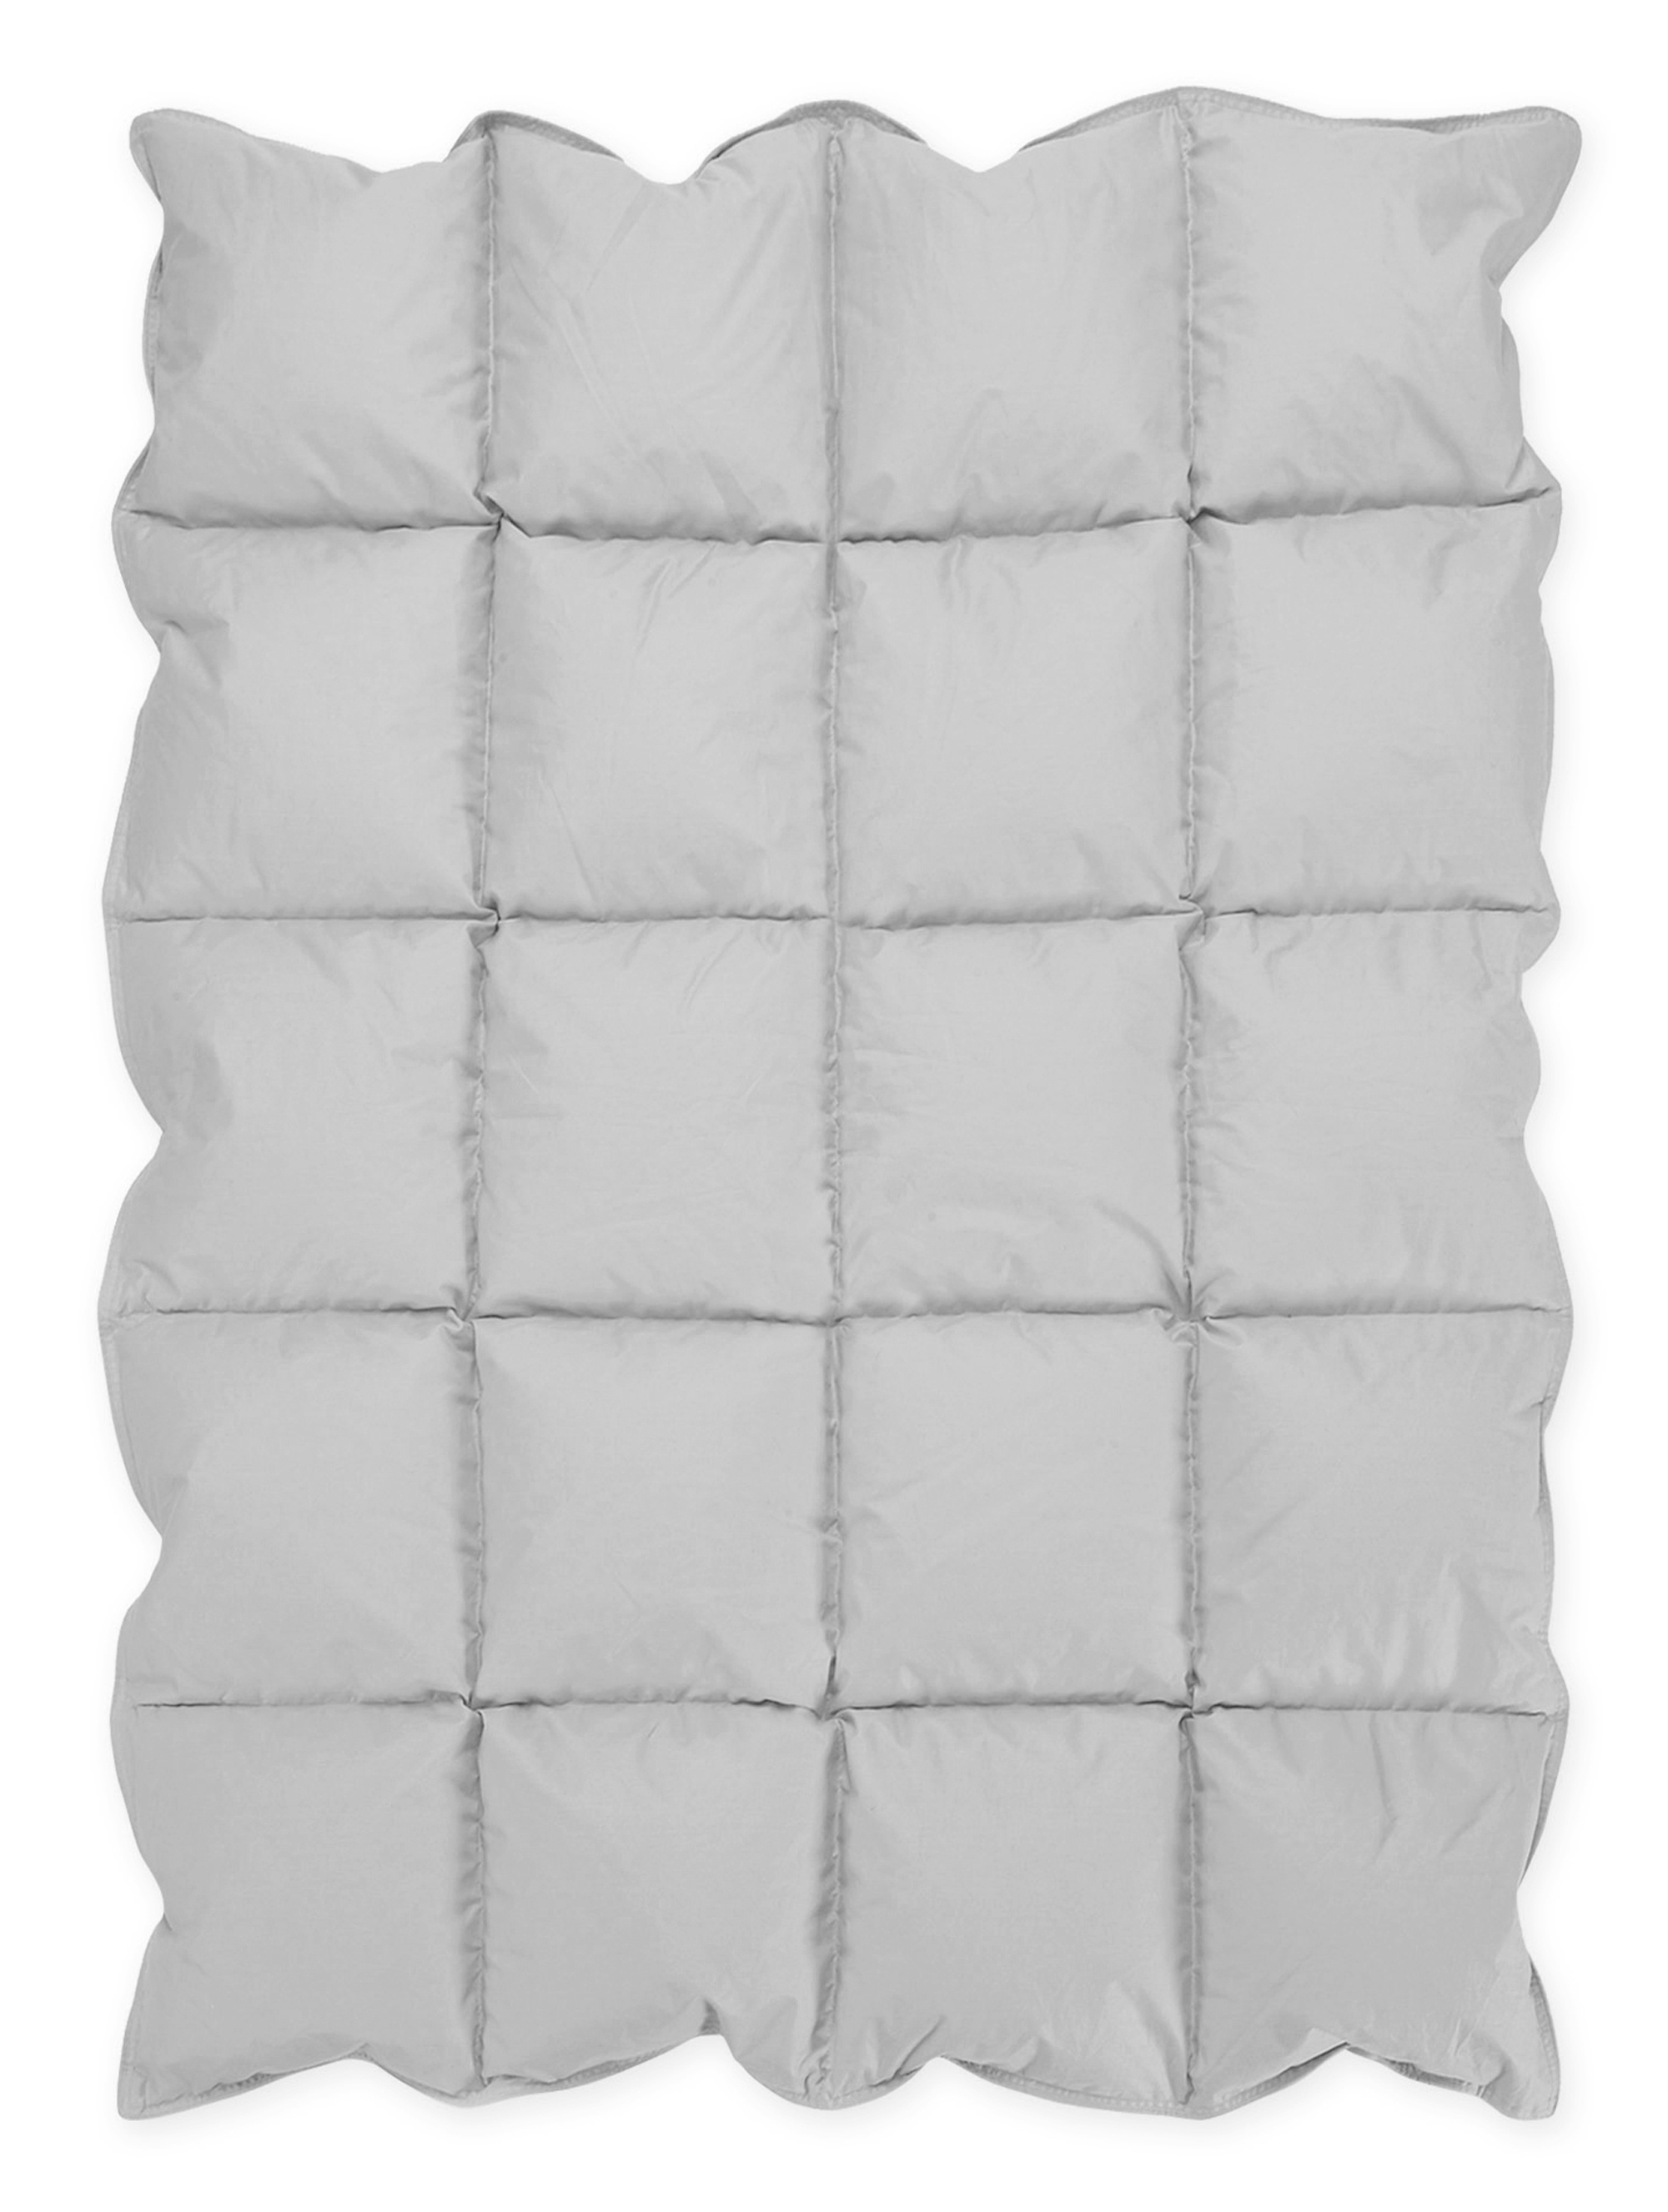 Alternatives to crib for babies - Lull Your Baby To Sleep With This Sweet Jojo Designs Grey Soft And Fluffy Down Alternative Crib Comforter Blanket It Is Covered In A 233 Thread Count Down